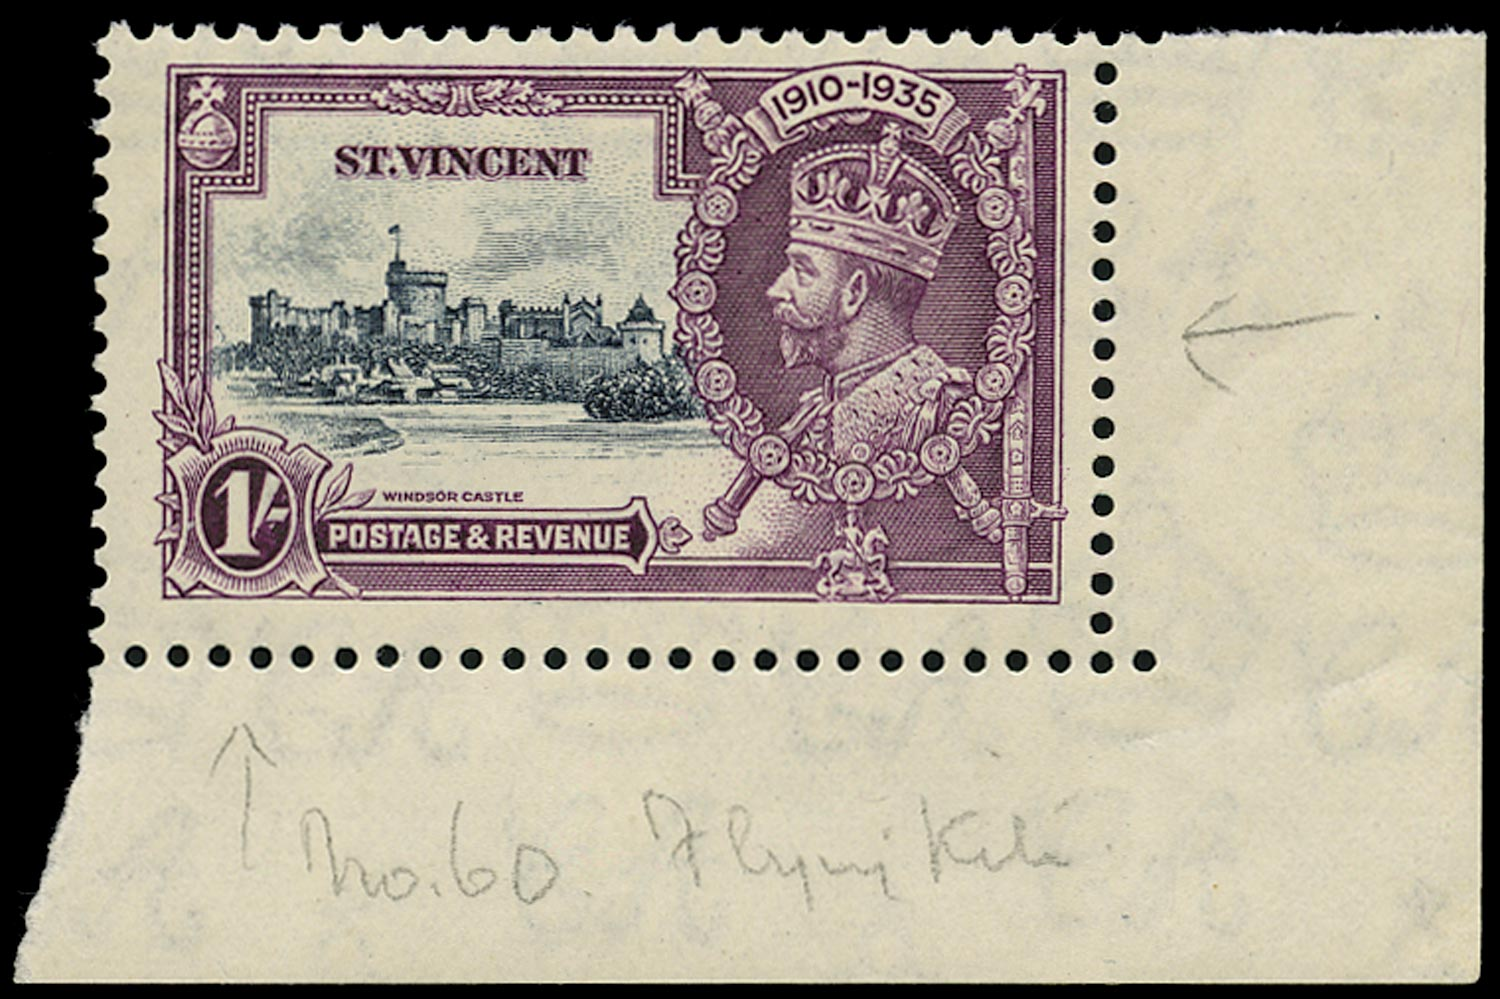 ST VINCENT 1935  SG145l Mint Silver Jubilee 1s slate and purple variety Kite and horizontal log